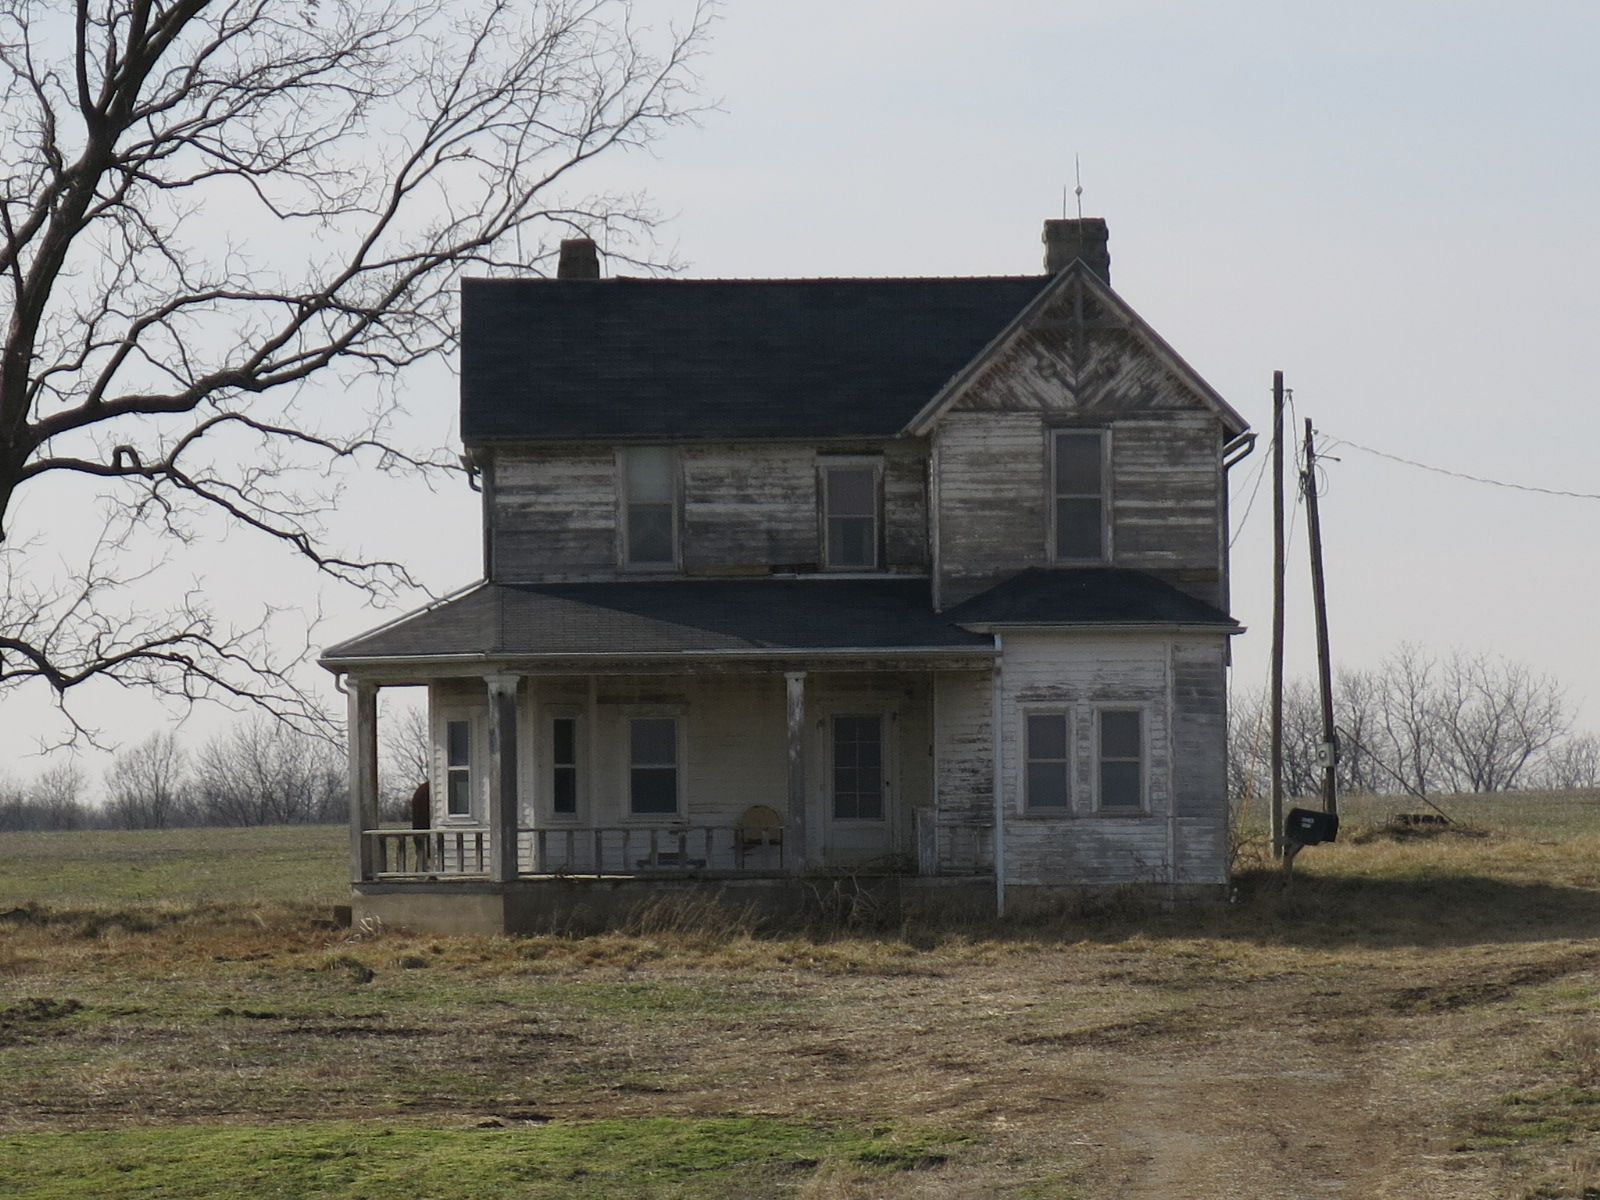 What Is This Style Of Farmhouse Called Abandoned Farm Houses Old Farm Houses Victorian Farmhouse